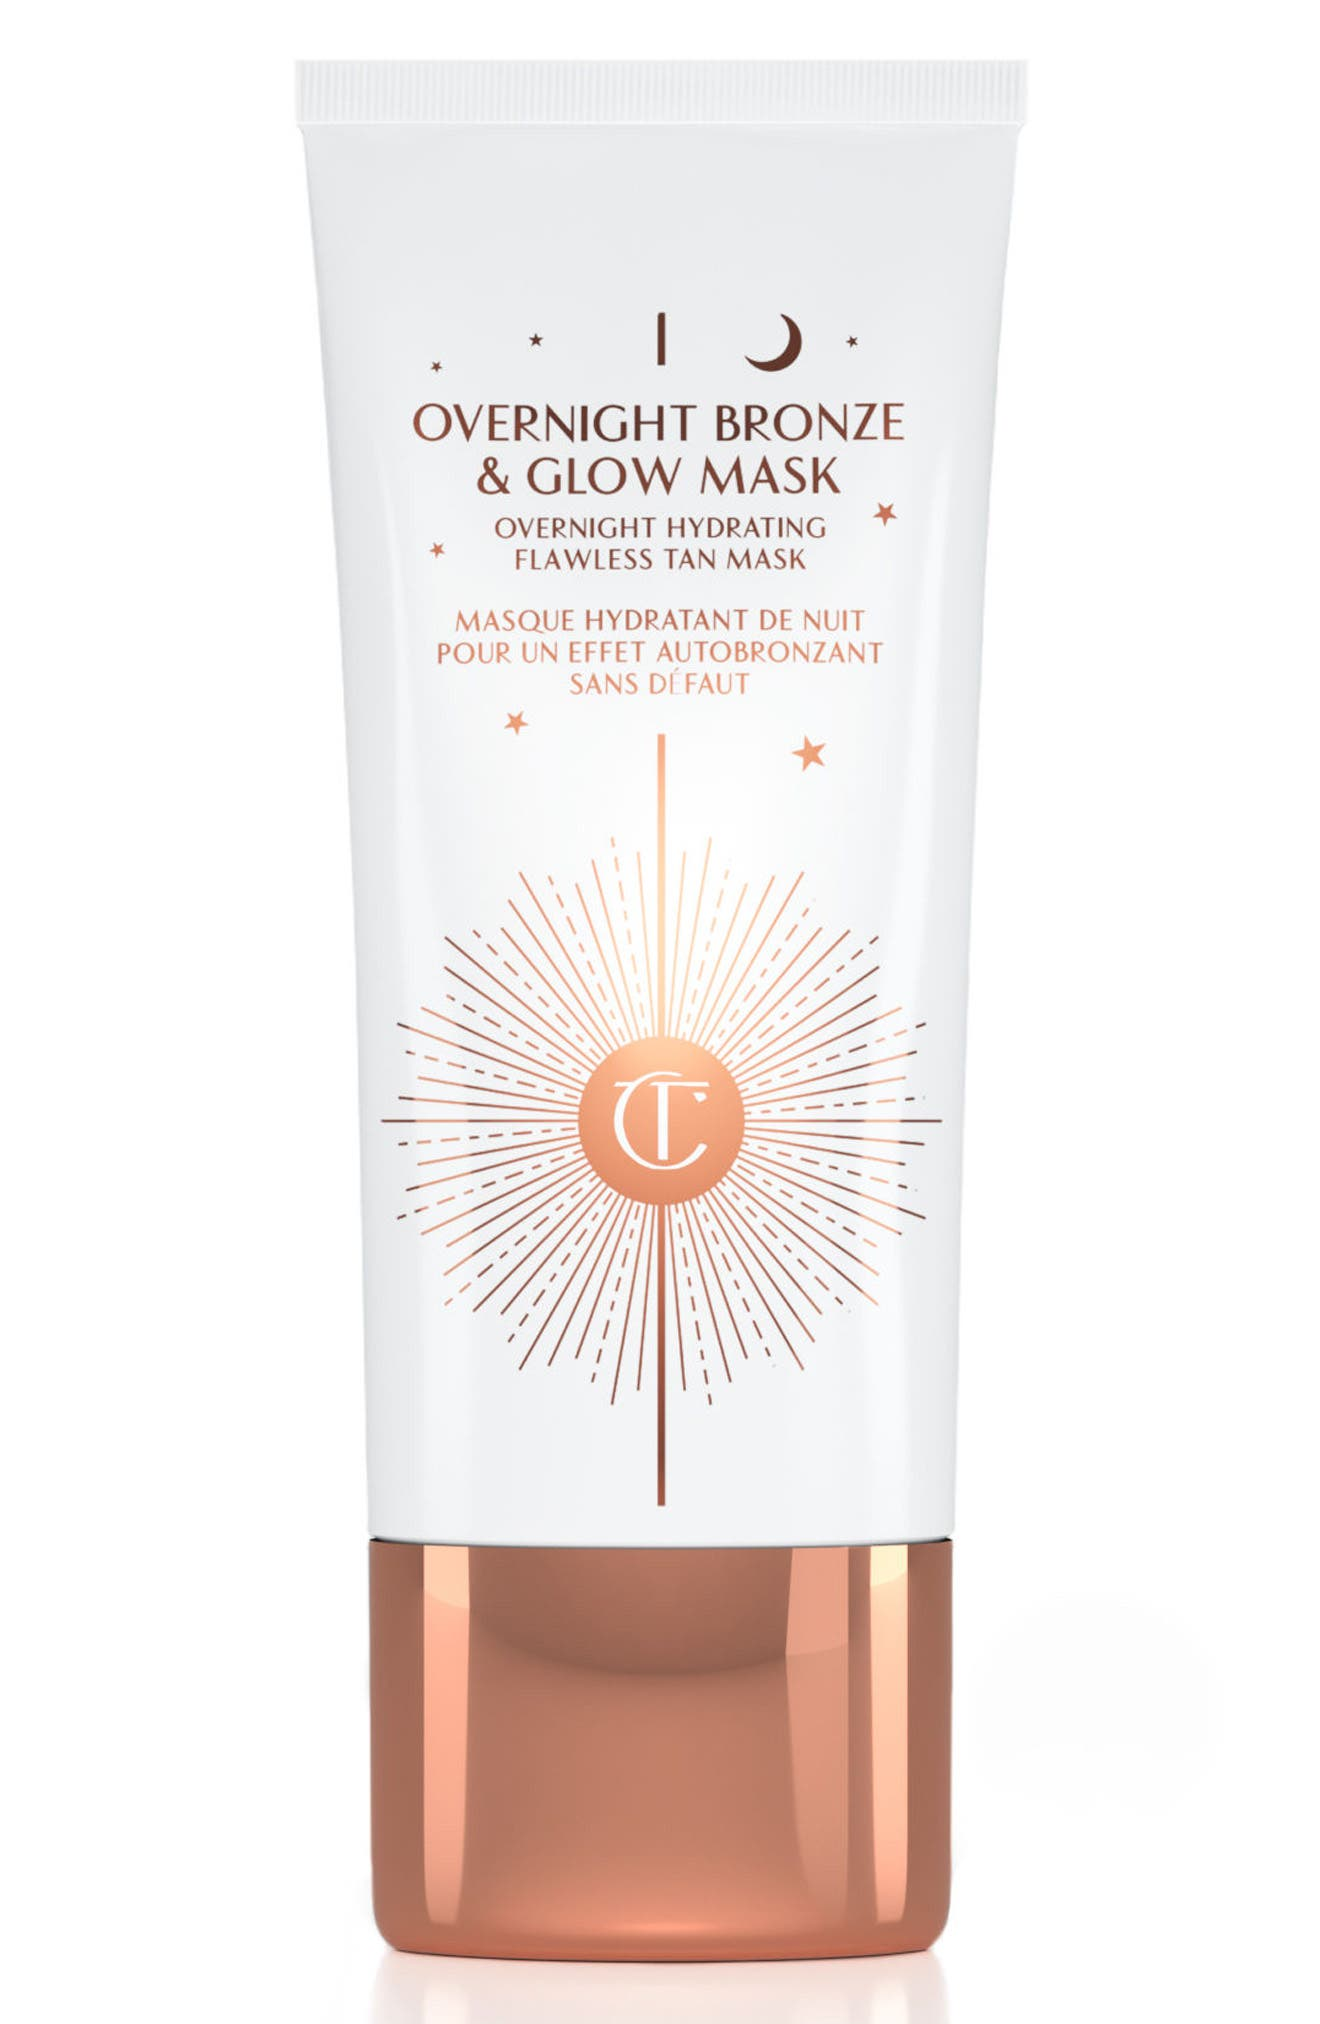 Overnight Bronze & Glow Mask,                             Main thumbnail 1, color,                             NO COLOR